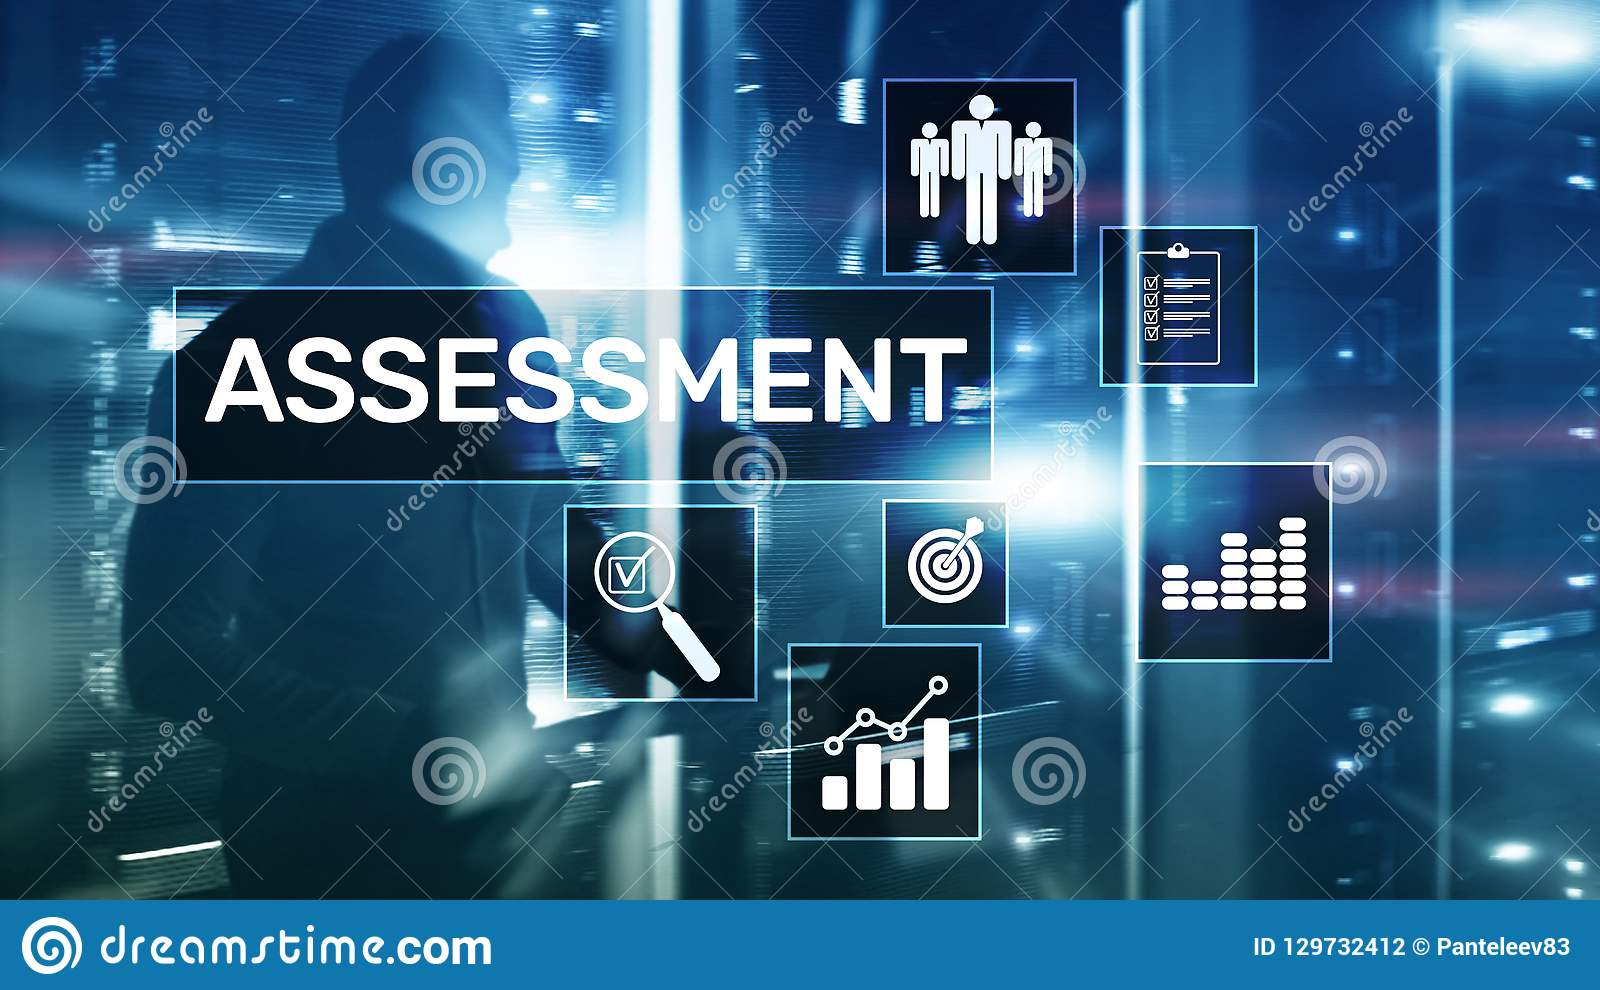 10 093 Assessment Background Photos Free Royalty Free Stock Photos From Dreamstime Assessments are carried out in. https www dreamstime com assessment evaluation measure analytics analysis business technology concept blurred background assessment evaluation image129732412